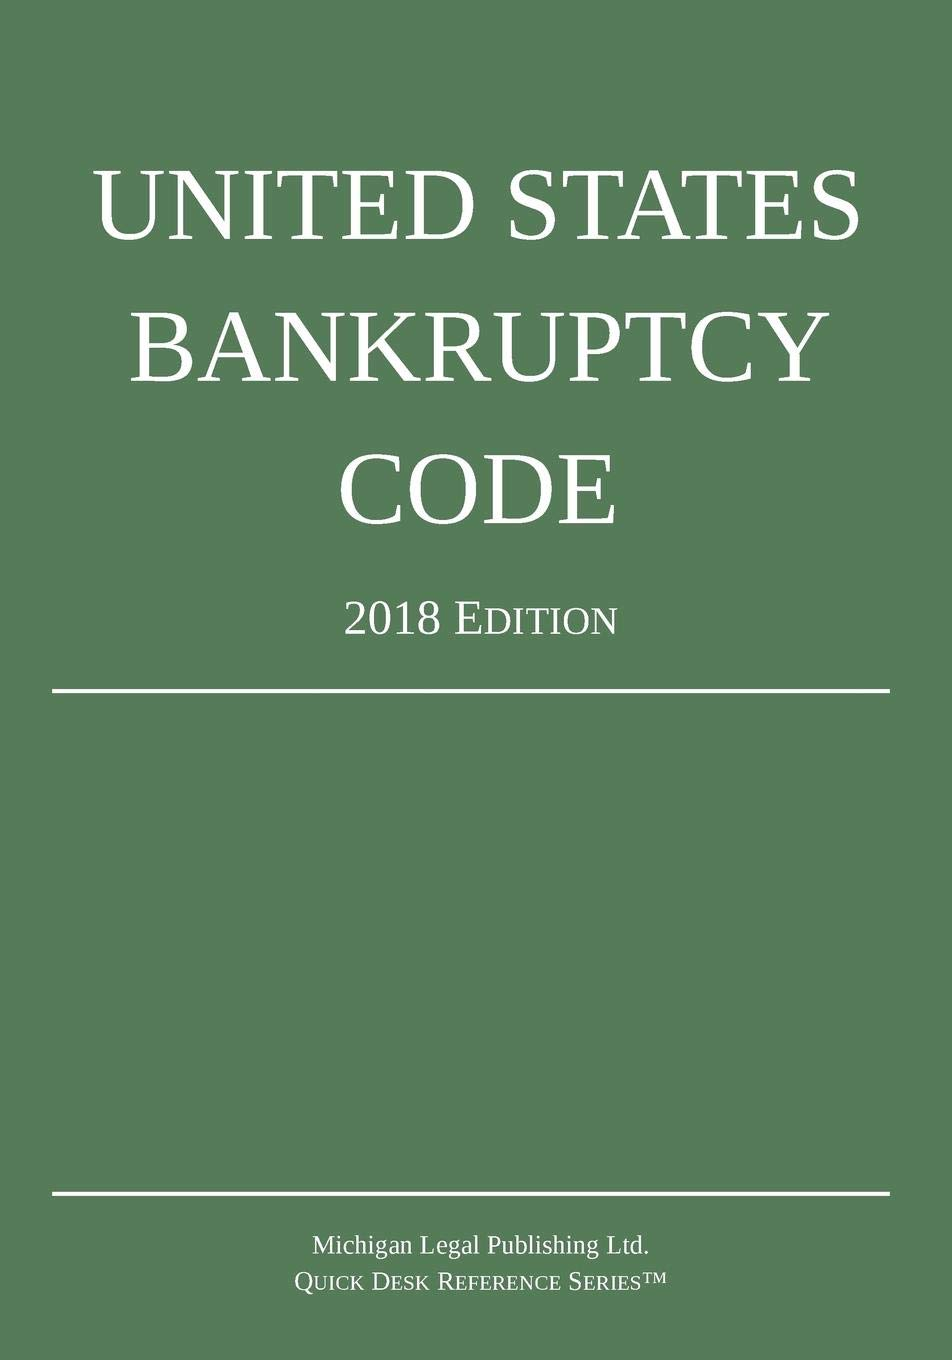 United States Bankruptcy Code